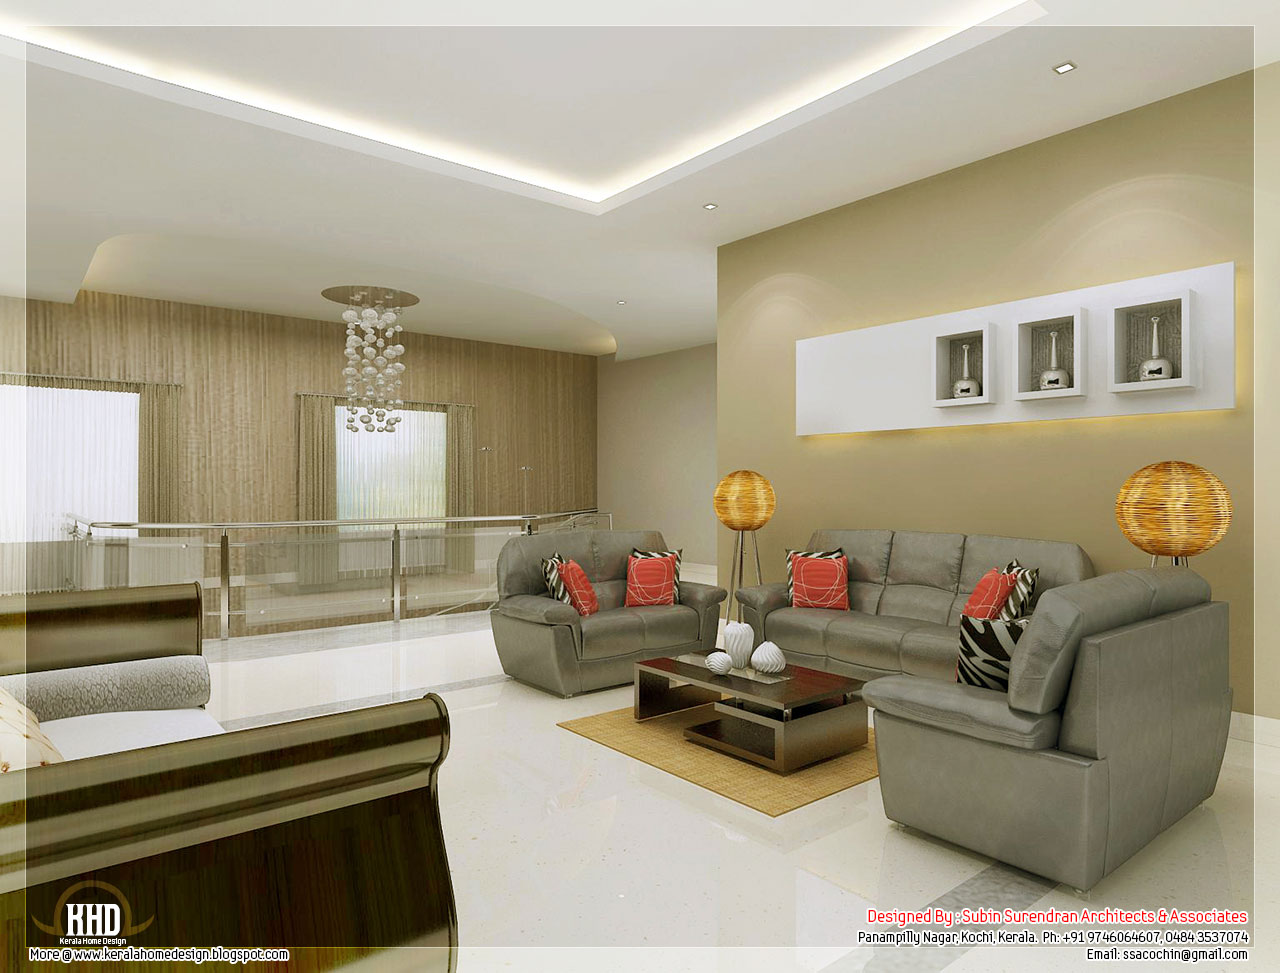 Awesome 3d interior renderings kerala home design and floor plans - Picture of living room design ...